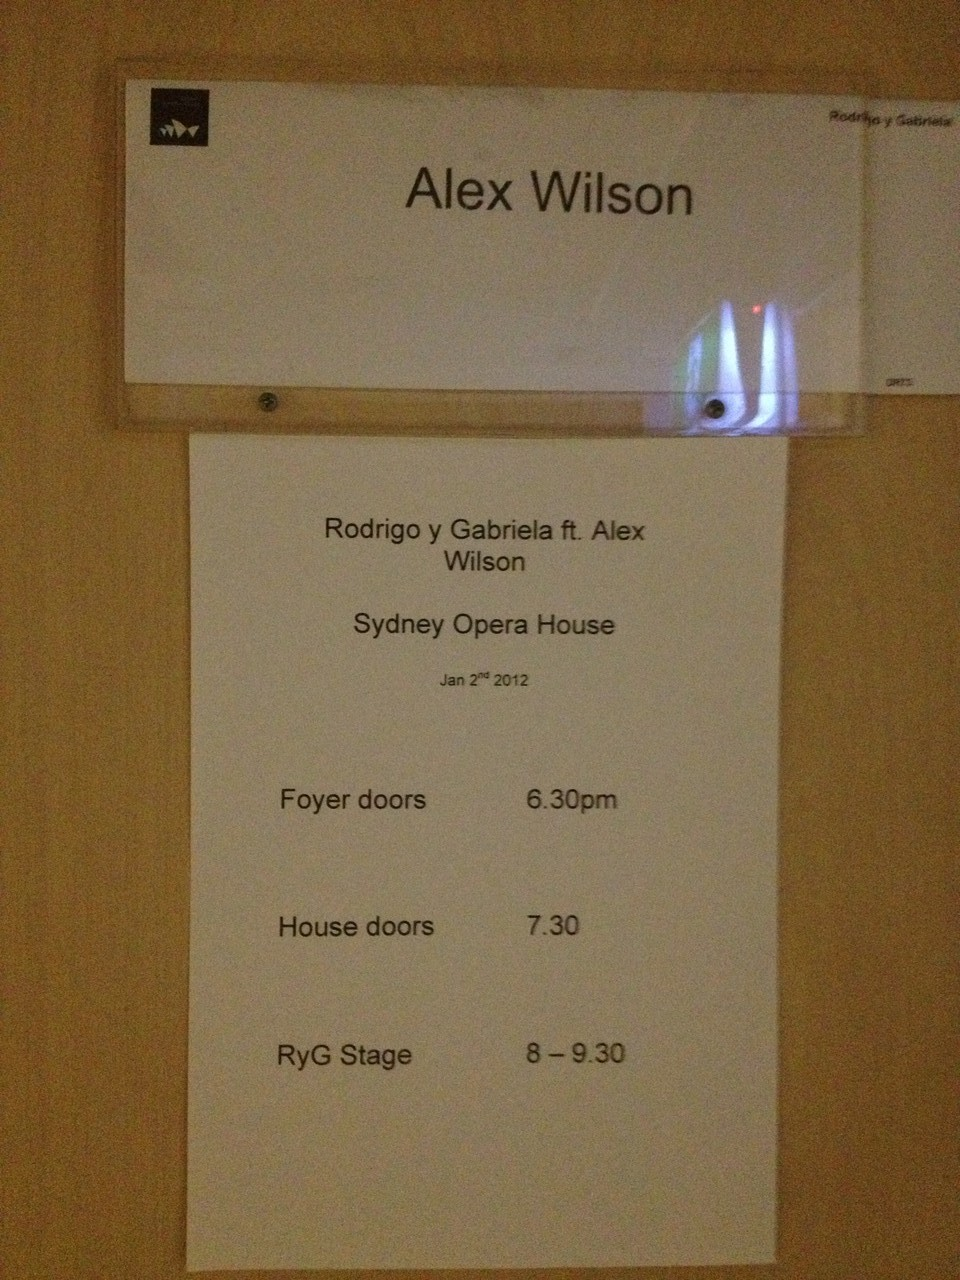 Into the dressing room ... — at Sydney Opera House.